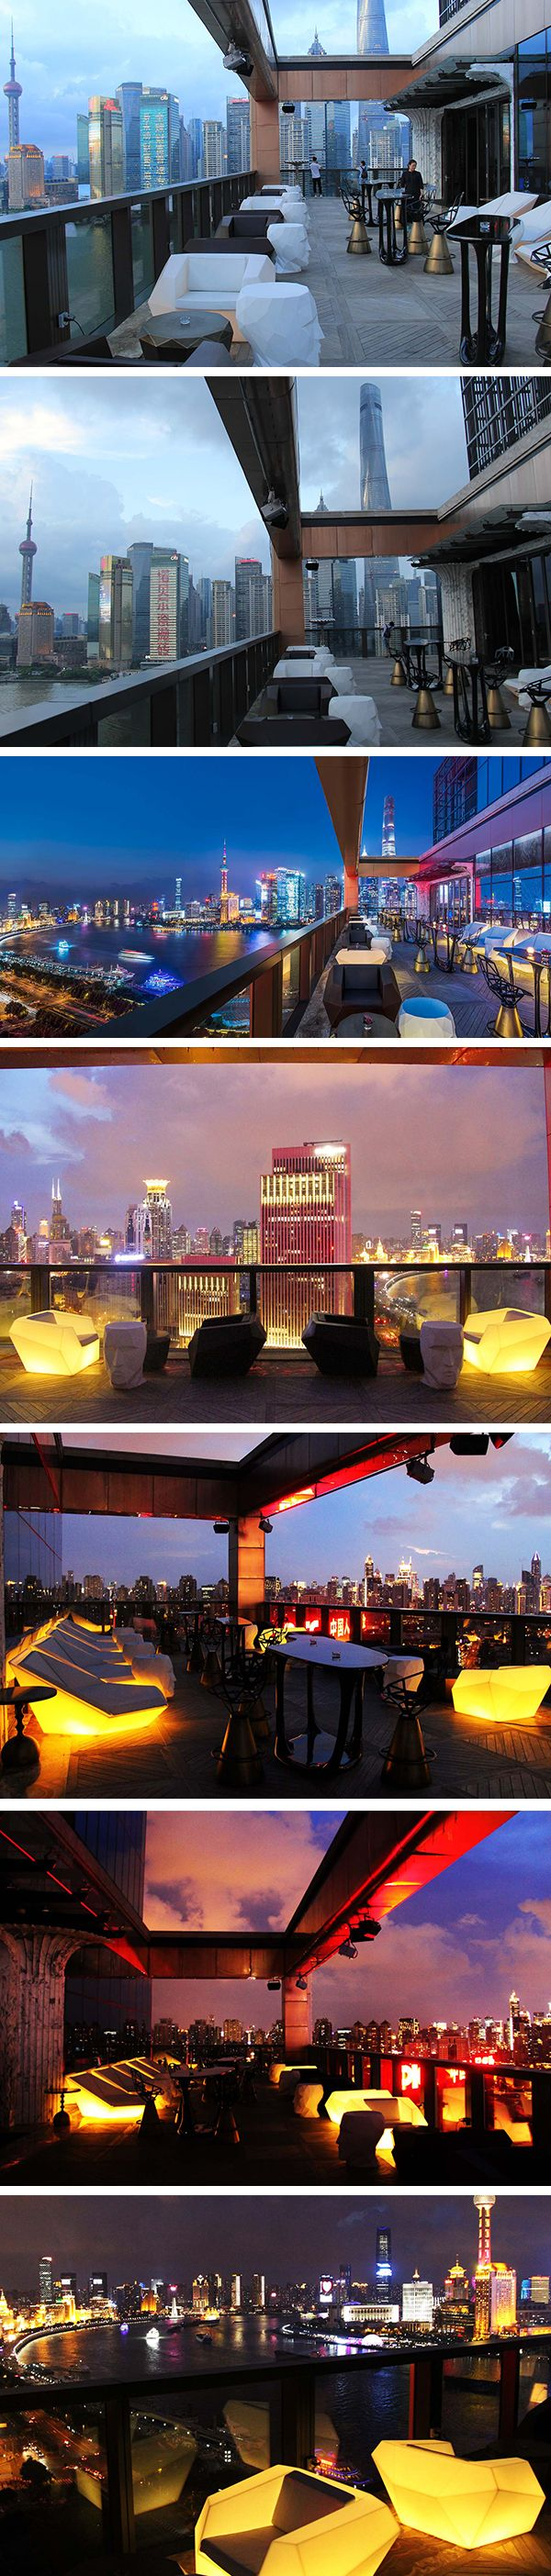 Incredible view that embraces the city of Shanghai from the Wanda Luxury Hotel (China)! Verticality, Modernity, Light ... Feast your eyes seated in Vondom Faz Lounge Chairs. At nightfall the furniture lights up to form part of the city! #hotel #luxe #luminousfurniture #outdoor #vondom #lounge